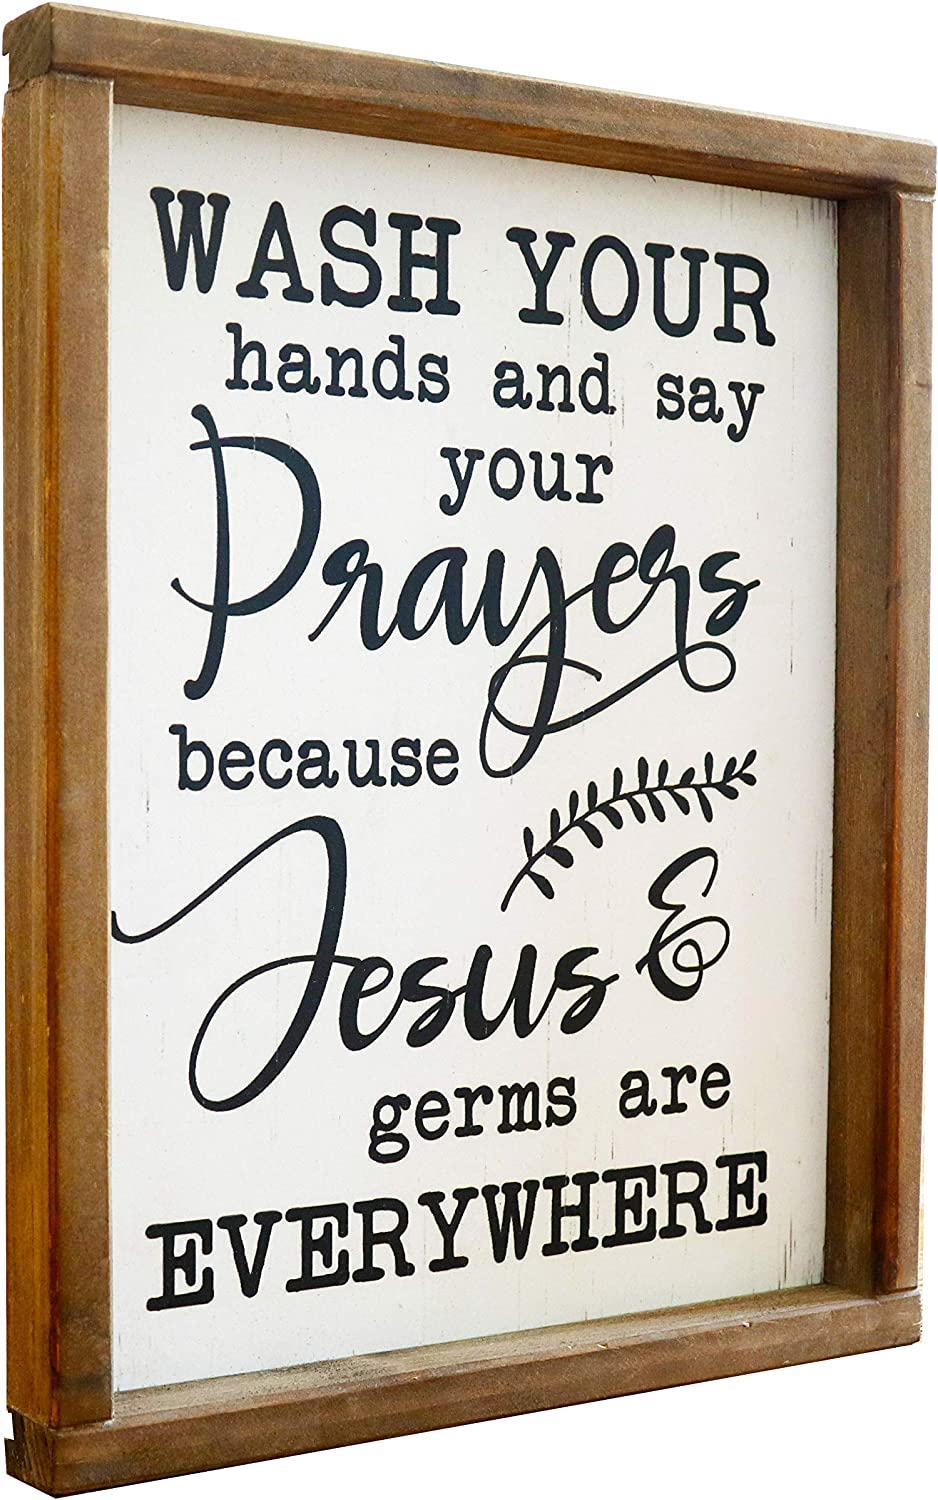 Wash Your Hands and Say Your Prayers sign -Funny Signs for Half Bathroom Decor-Framed Farmhouse Bathroom Wall Decor-Cute Guest Bathroom Decor Wall Art, Rustic Home Décor Housewarming Gift 9.4x11.8inch